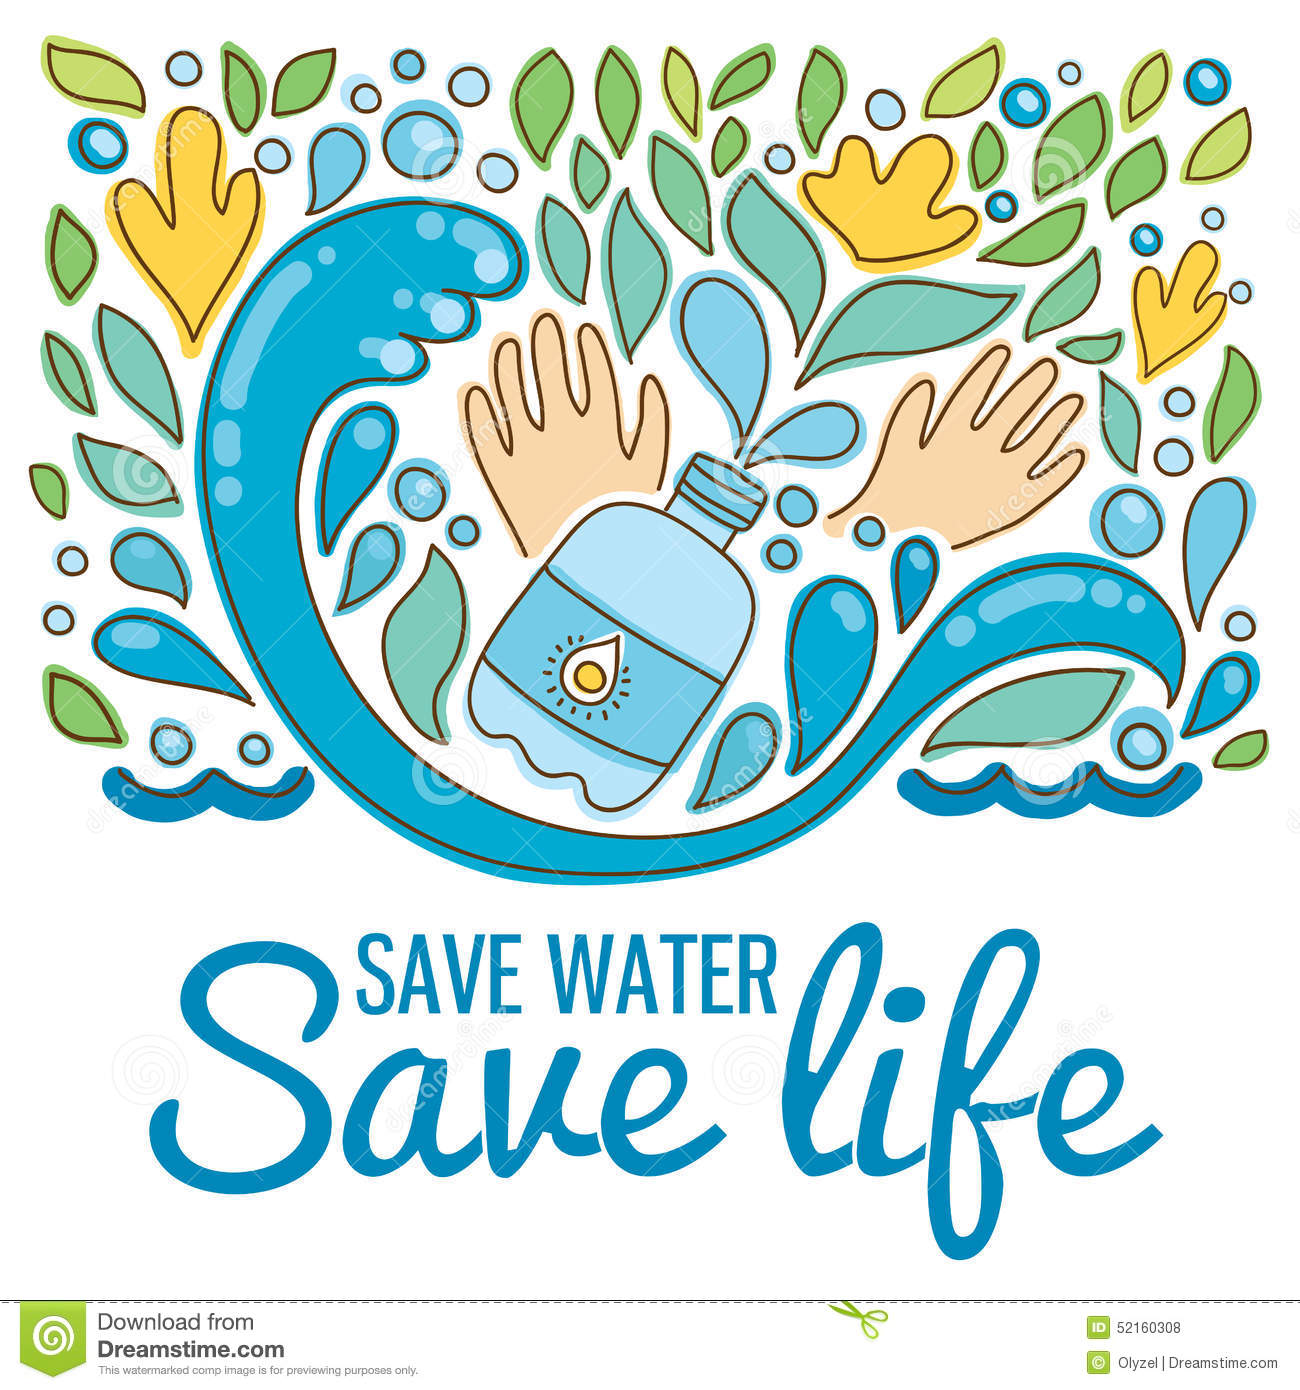 Poster design on save water - Poster Design On Save Water Save Water Save Life Hand Drawn Drops Waves Royalty Free Download